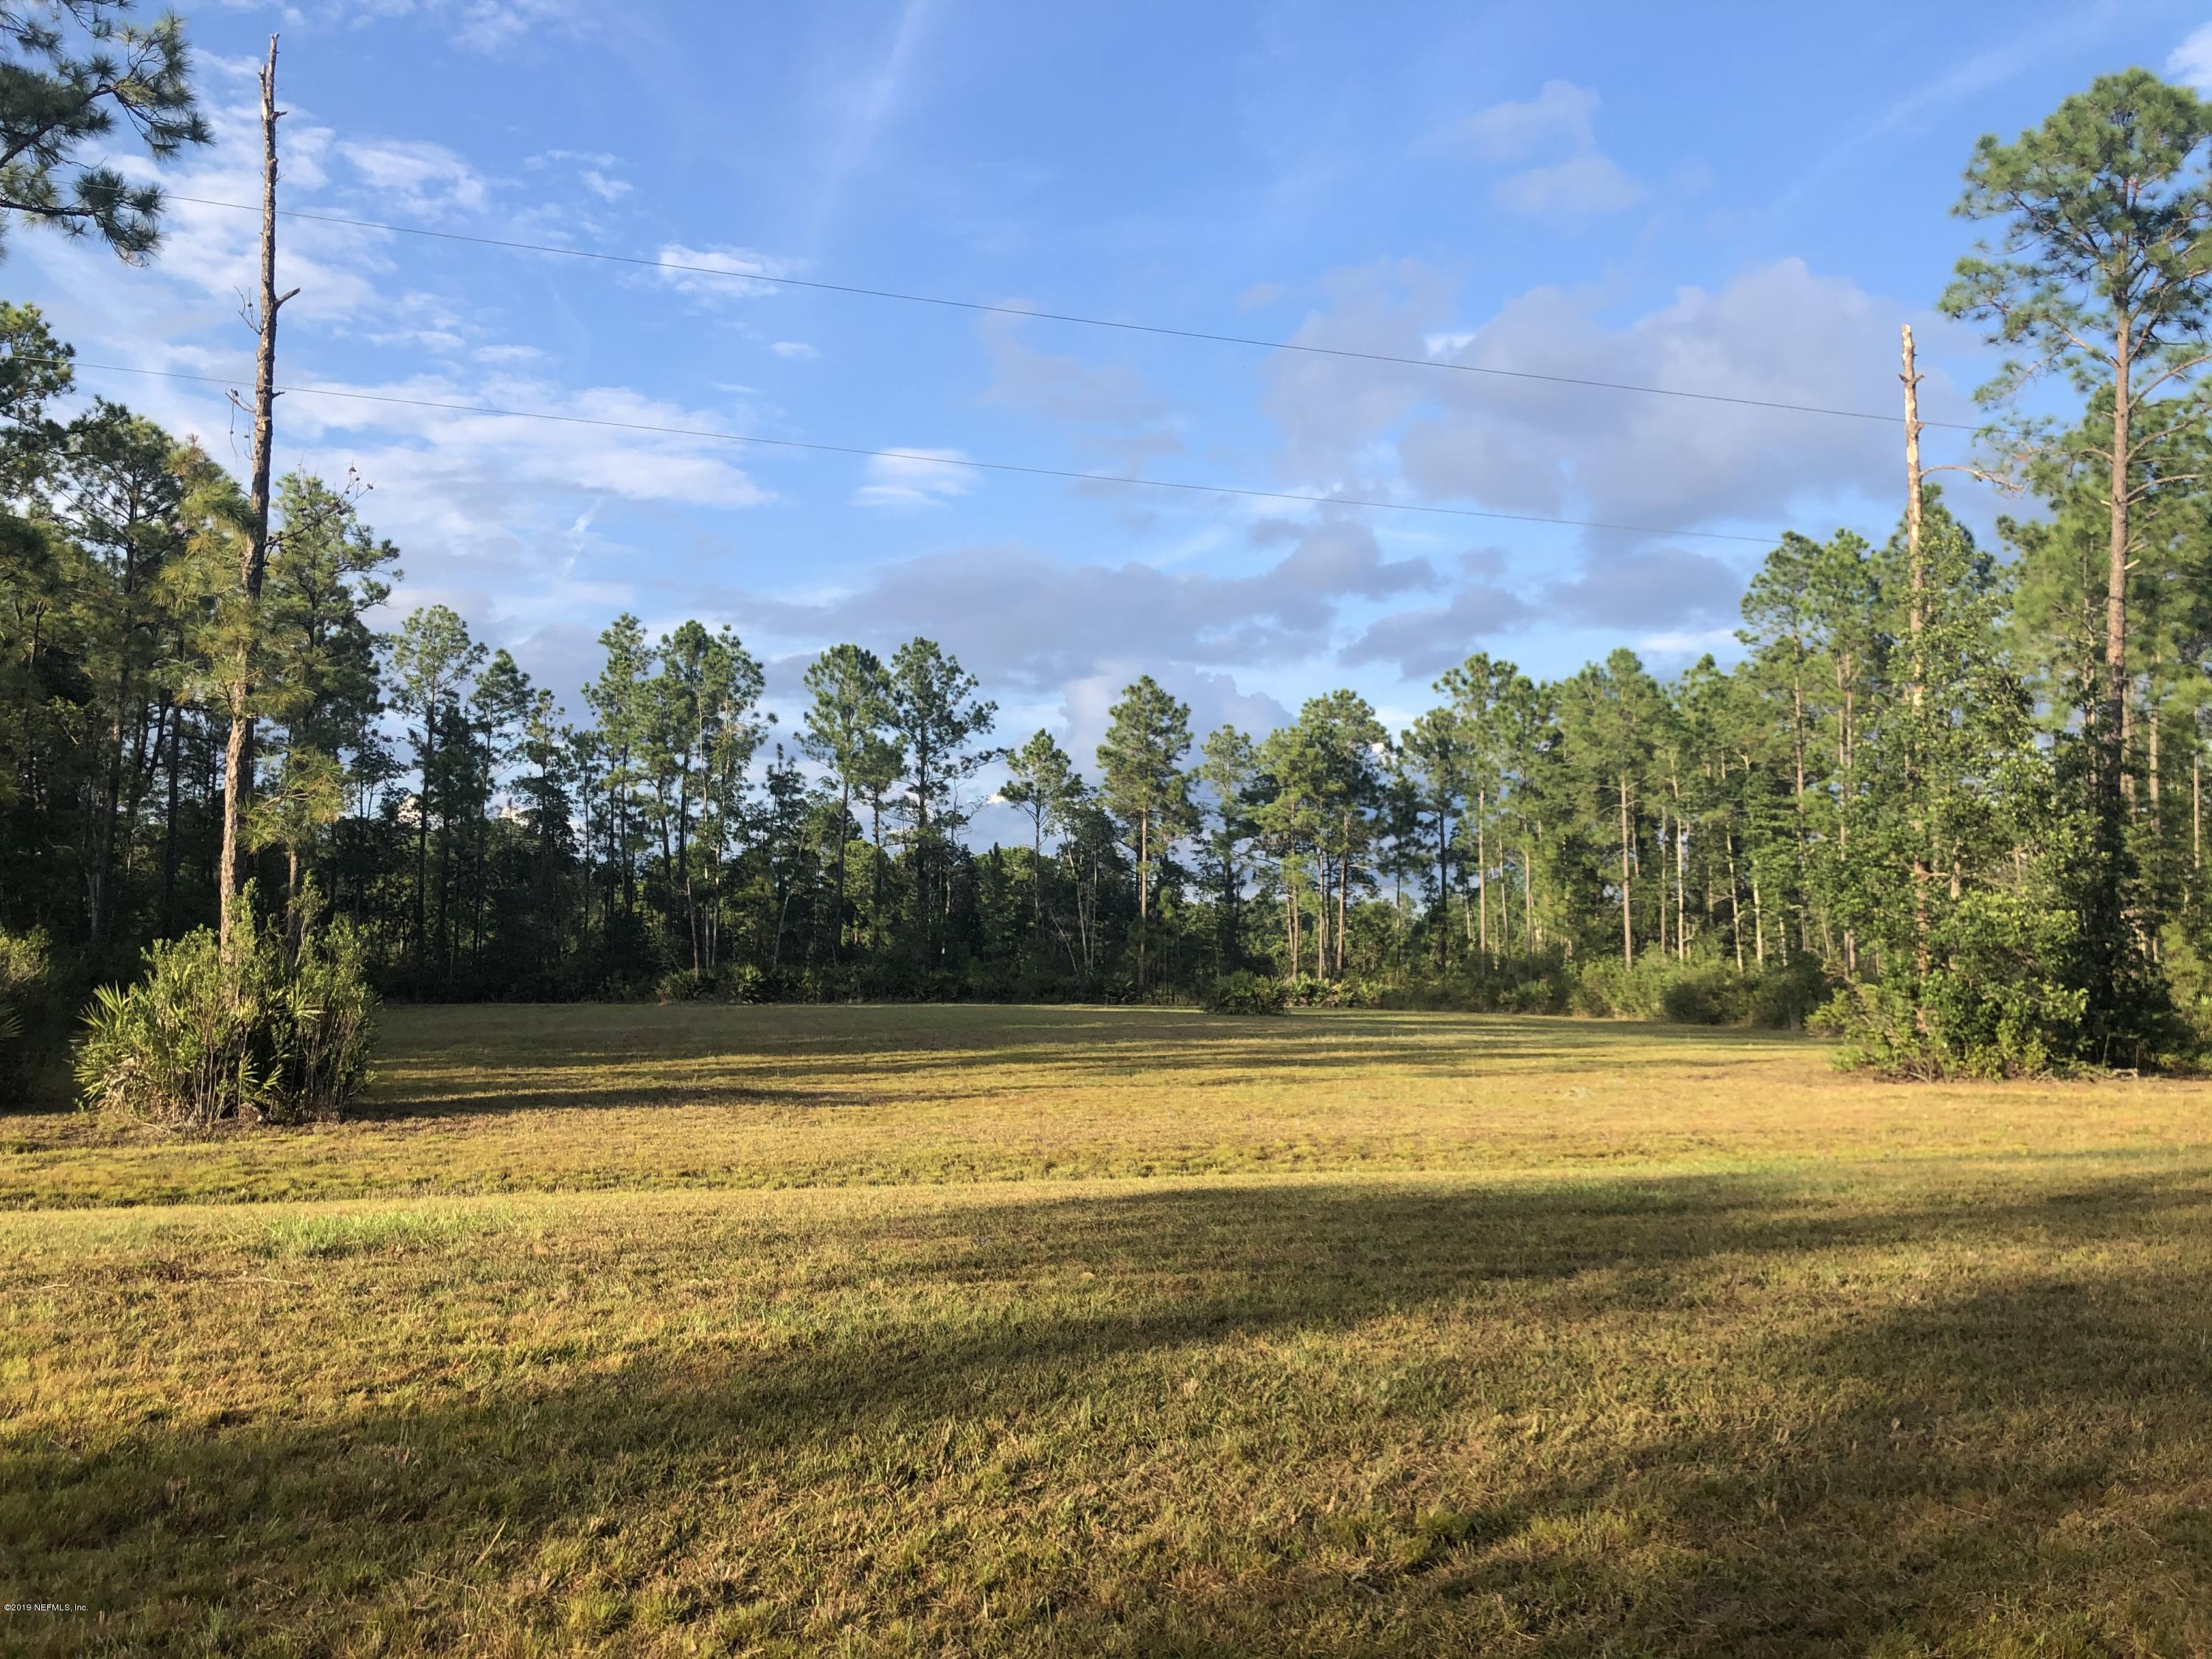 0 ANDORRA, PALATKA, FLORIDA 32177, ,Vacant land,For sale,ANDORRA,1022764